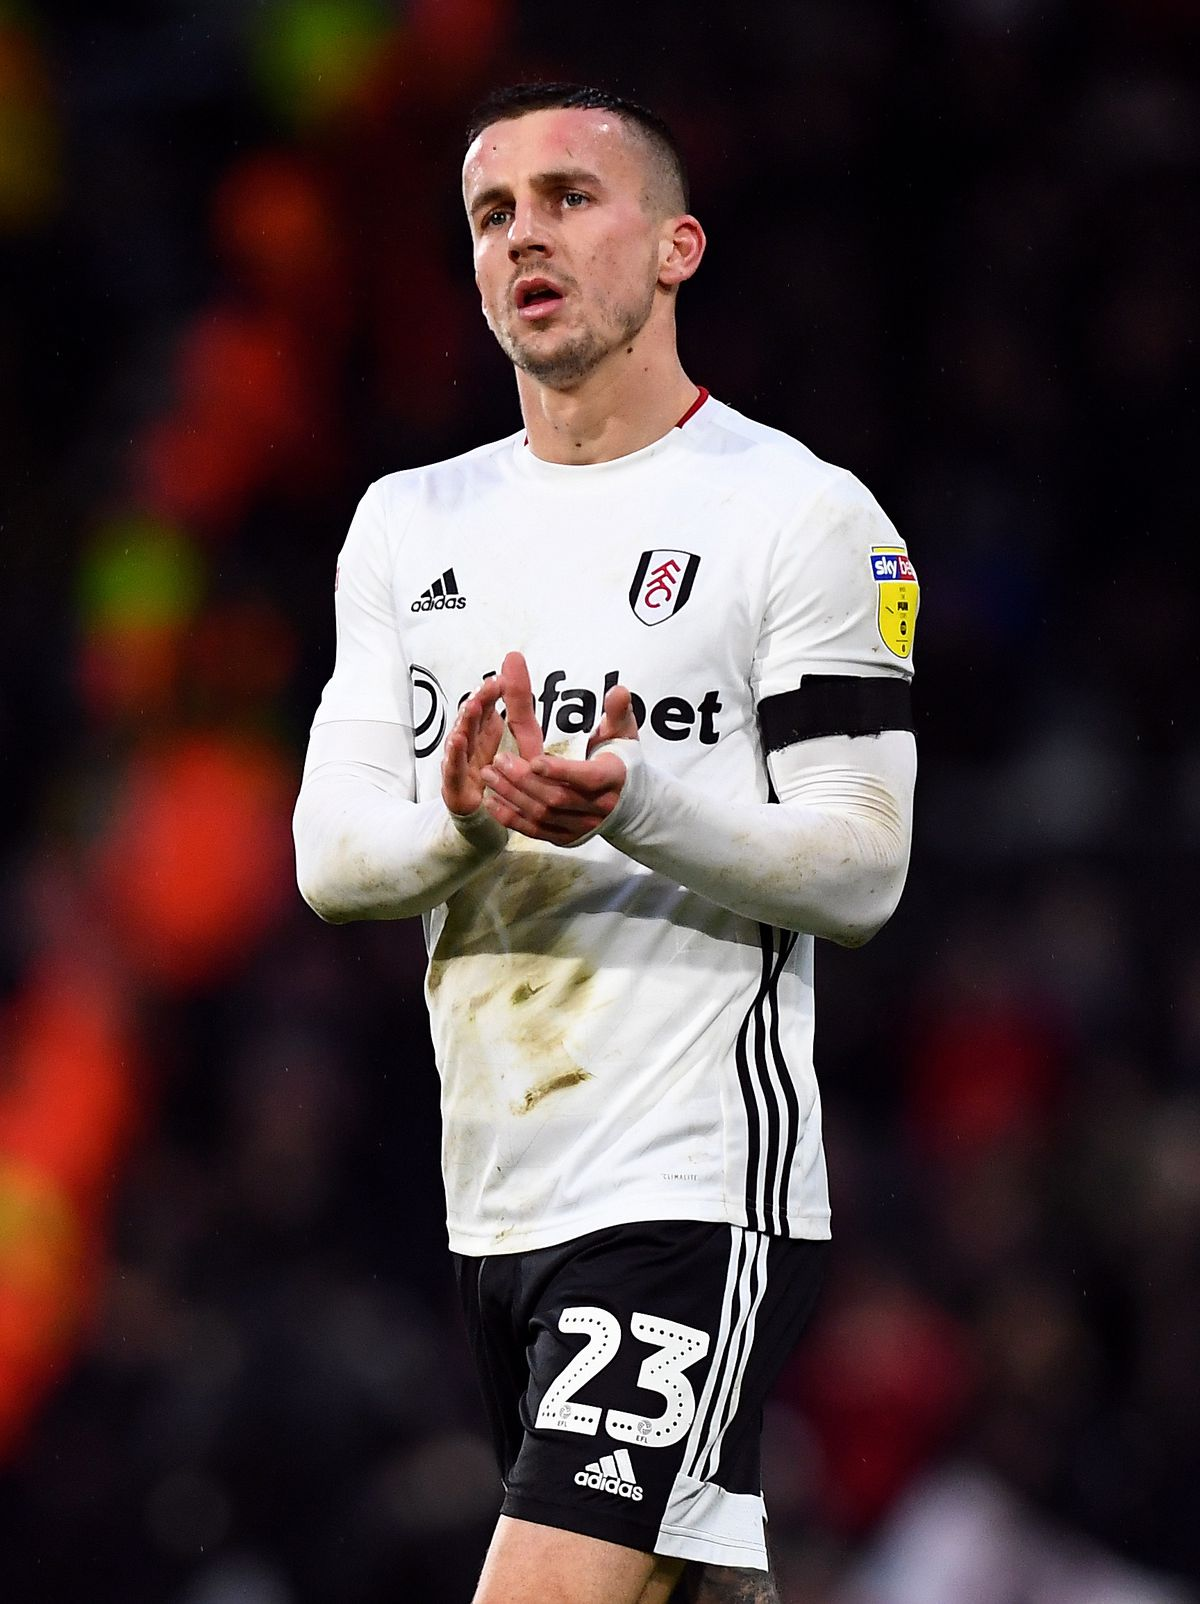 Fulham's Joe Bryan applauds the fans after the final whistle at the Sky Bet Championship match at Craven Cottage, London.